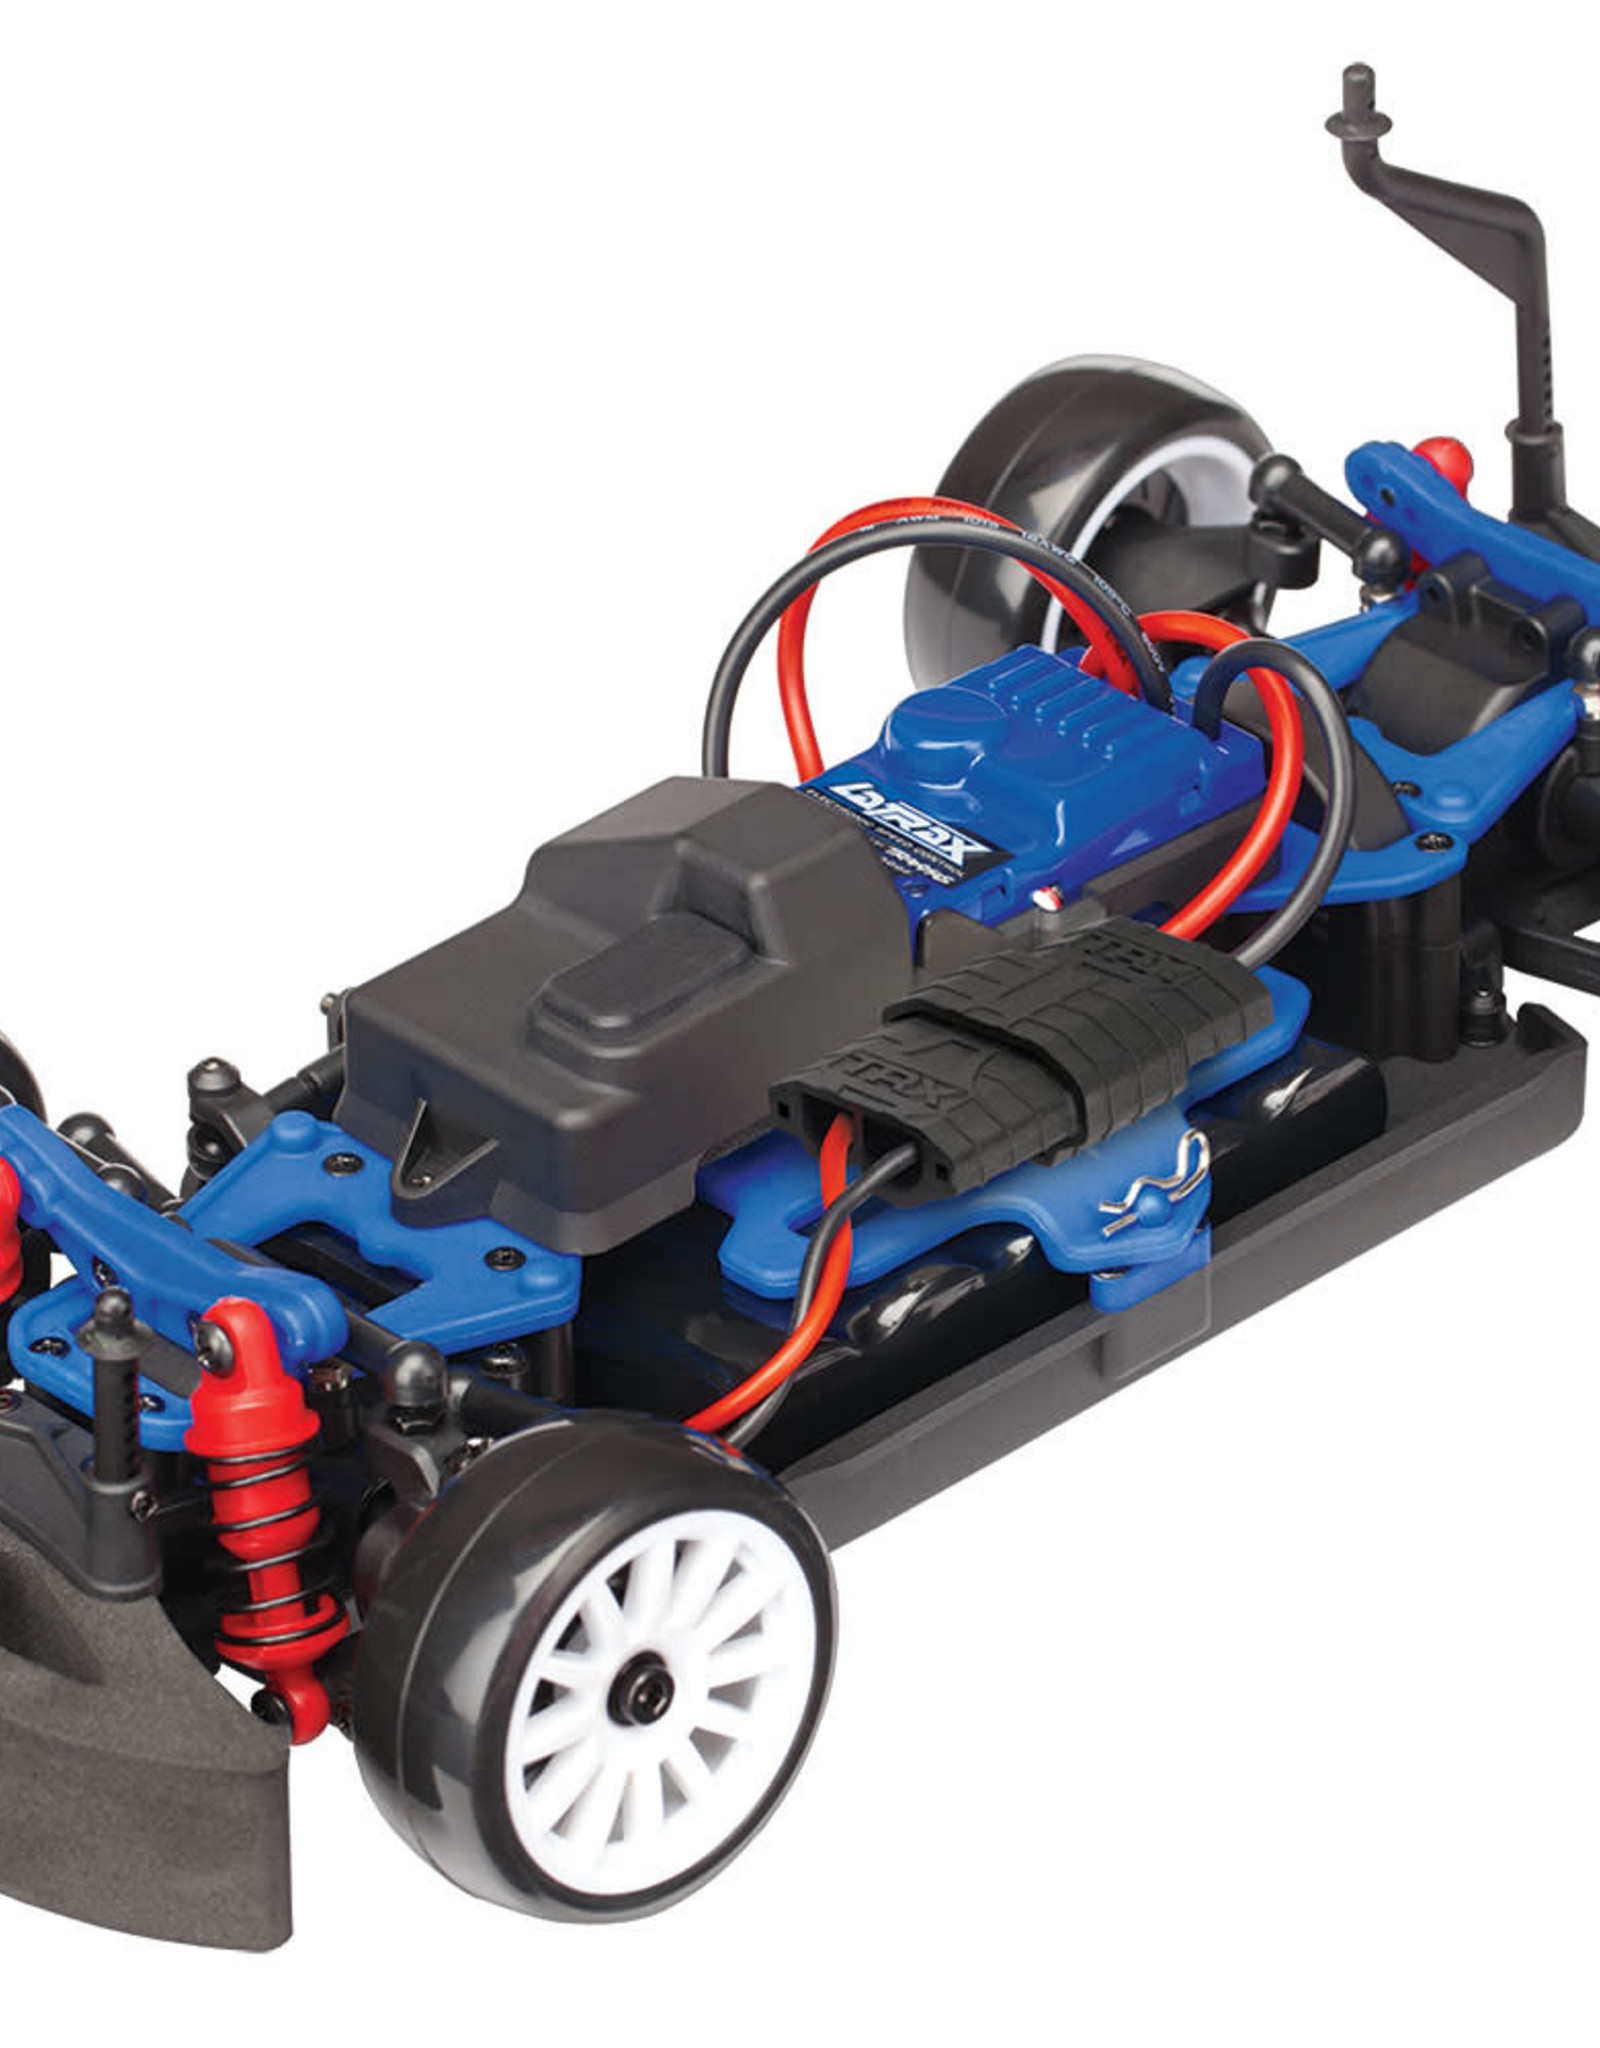 Traxxas TRA75054-5 GRN  LaTrax® Rally: 1/18 Scale 4WD Electric Rally Racer. Ready-To-Race® and Powered by Traxxas®